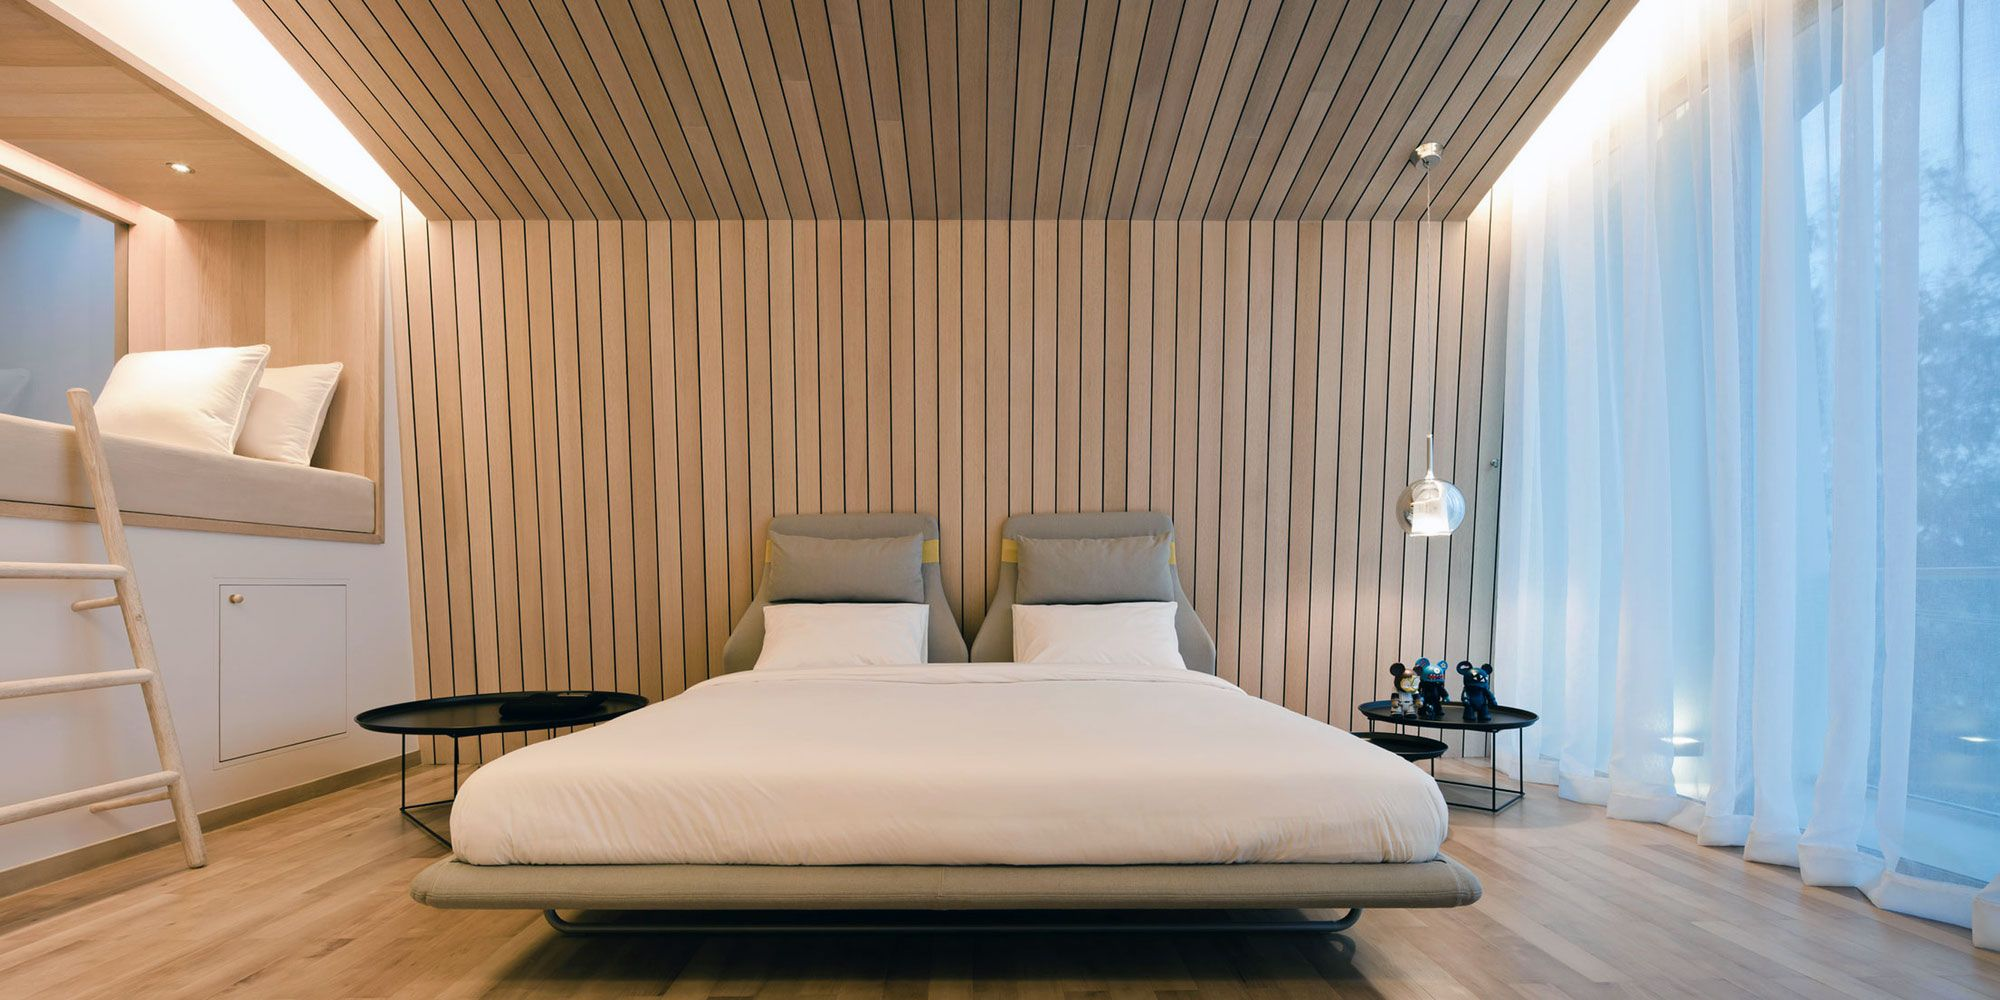 Interior Design Modern Bedroom House Design With Low Profile Bed